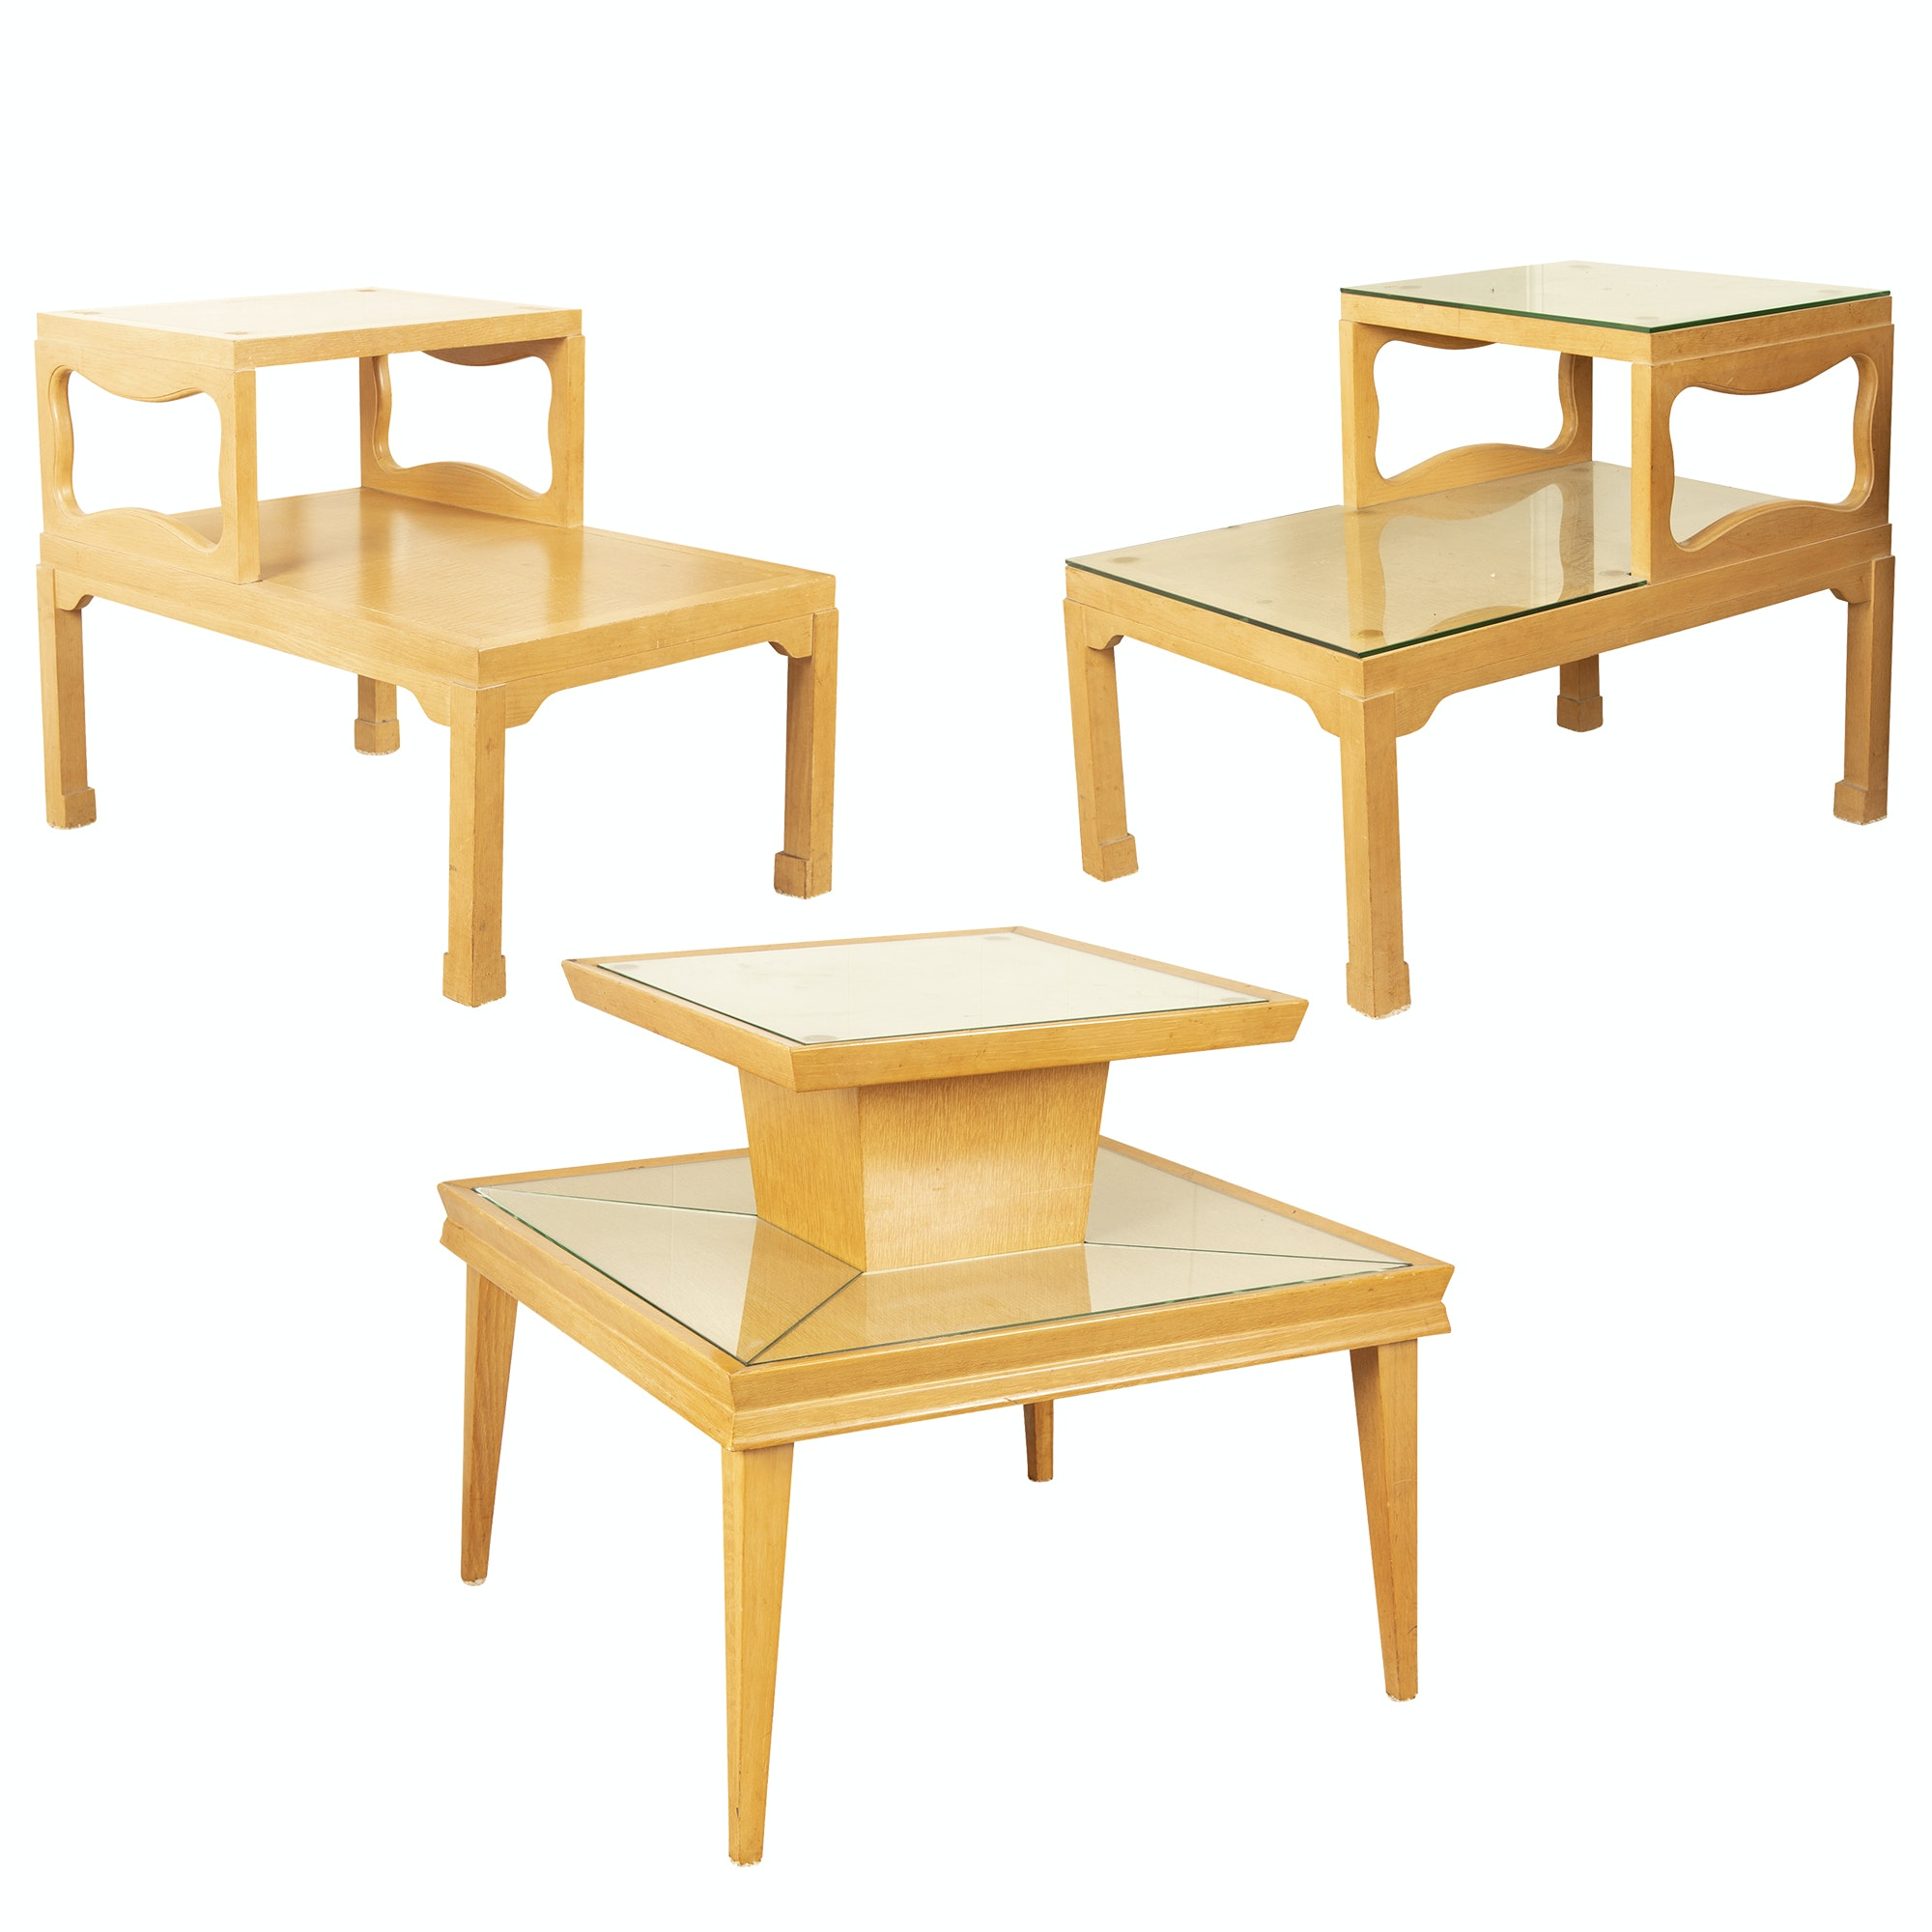 Maple Coffee Table and End Tables by Harmony House, Mid-20th Century